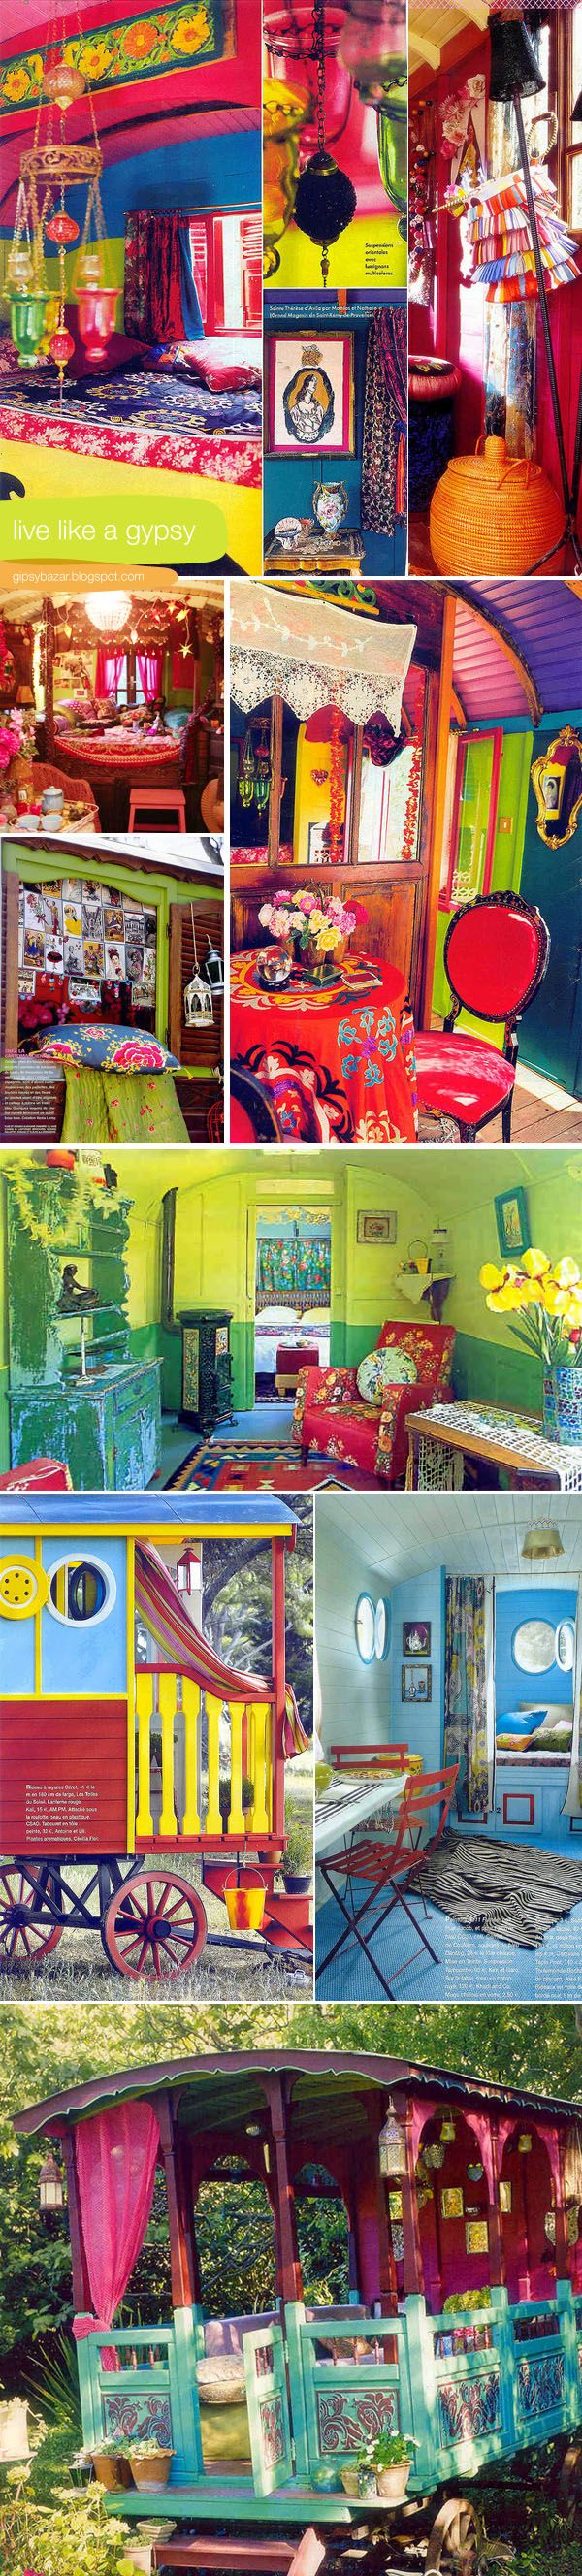 Eclectic Gypsyland found via @lilmagoolie